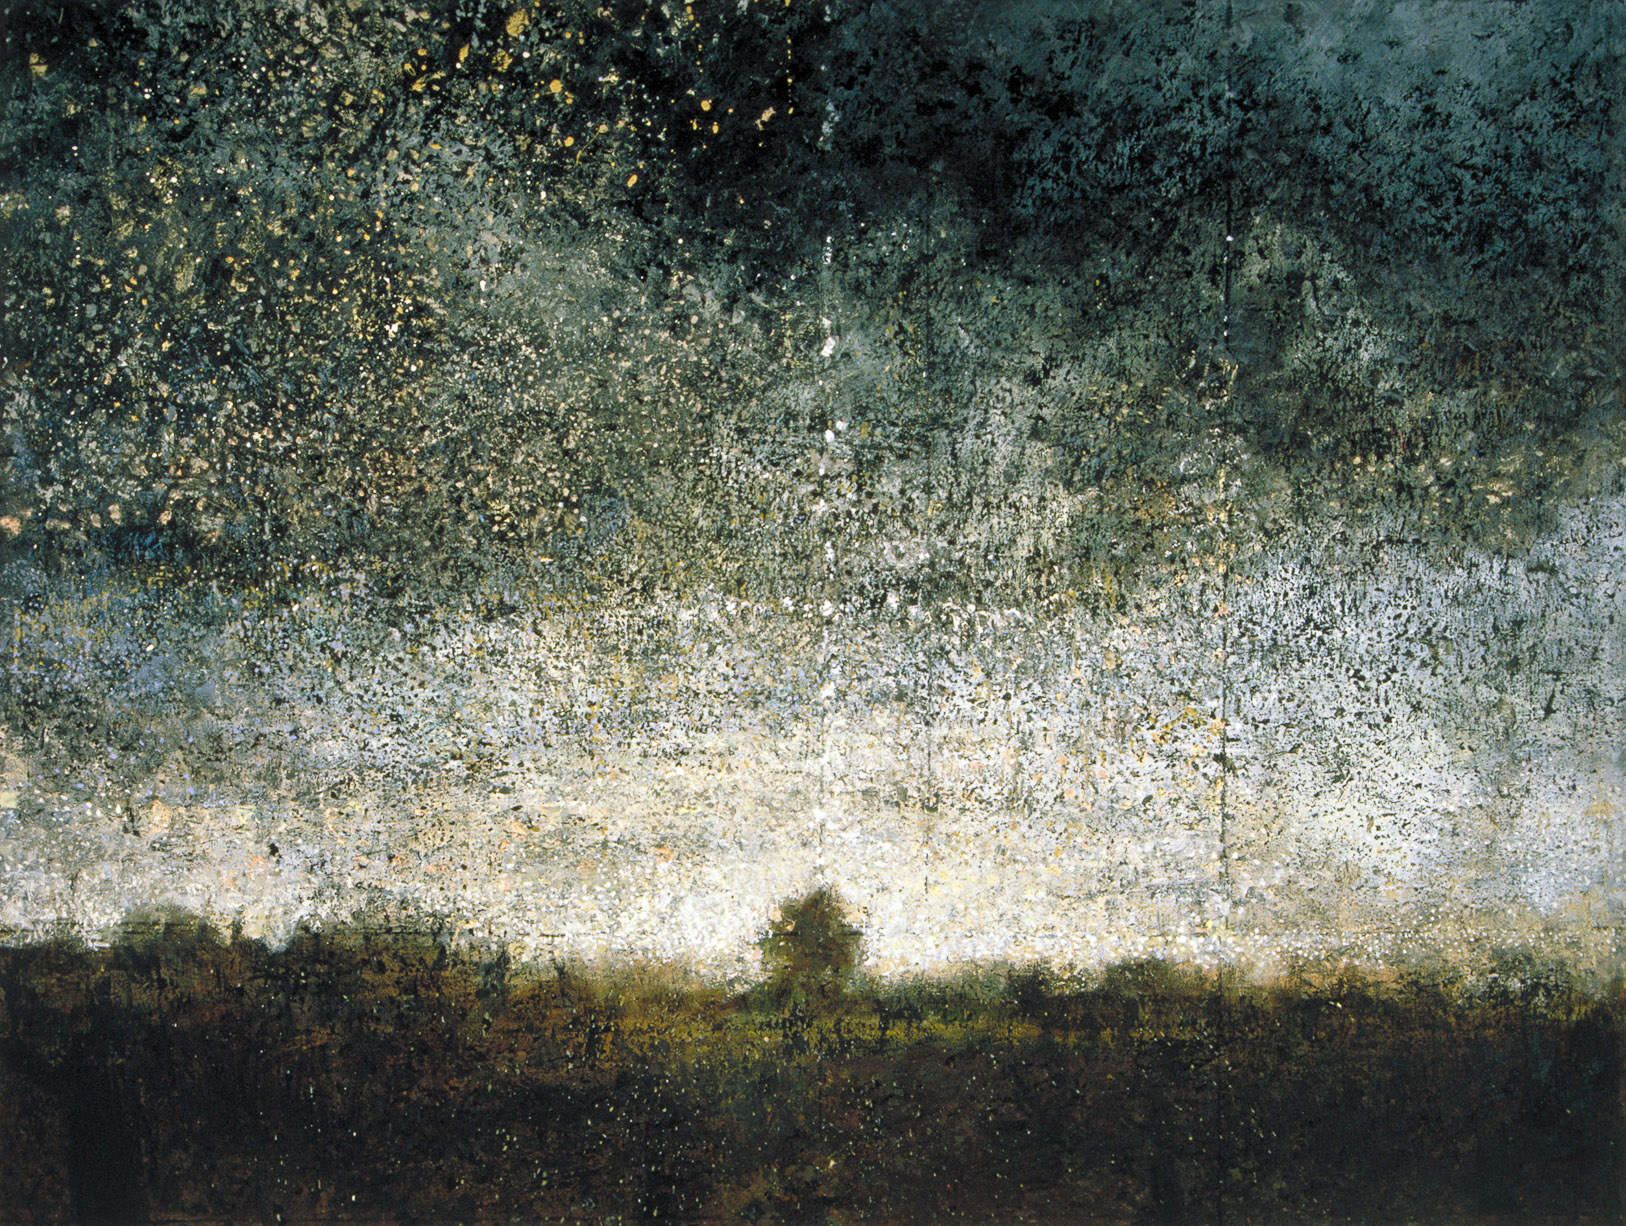 Gloaming by Randall Stoltzfus